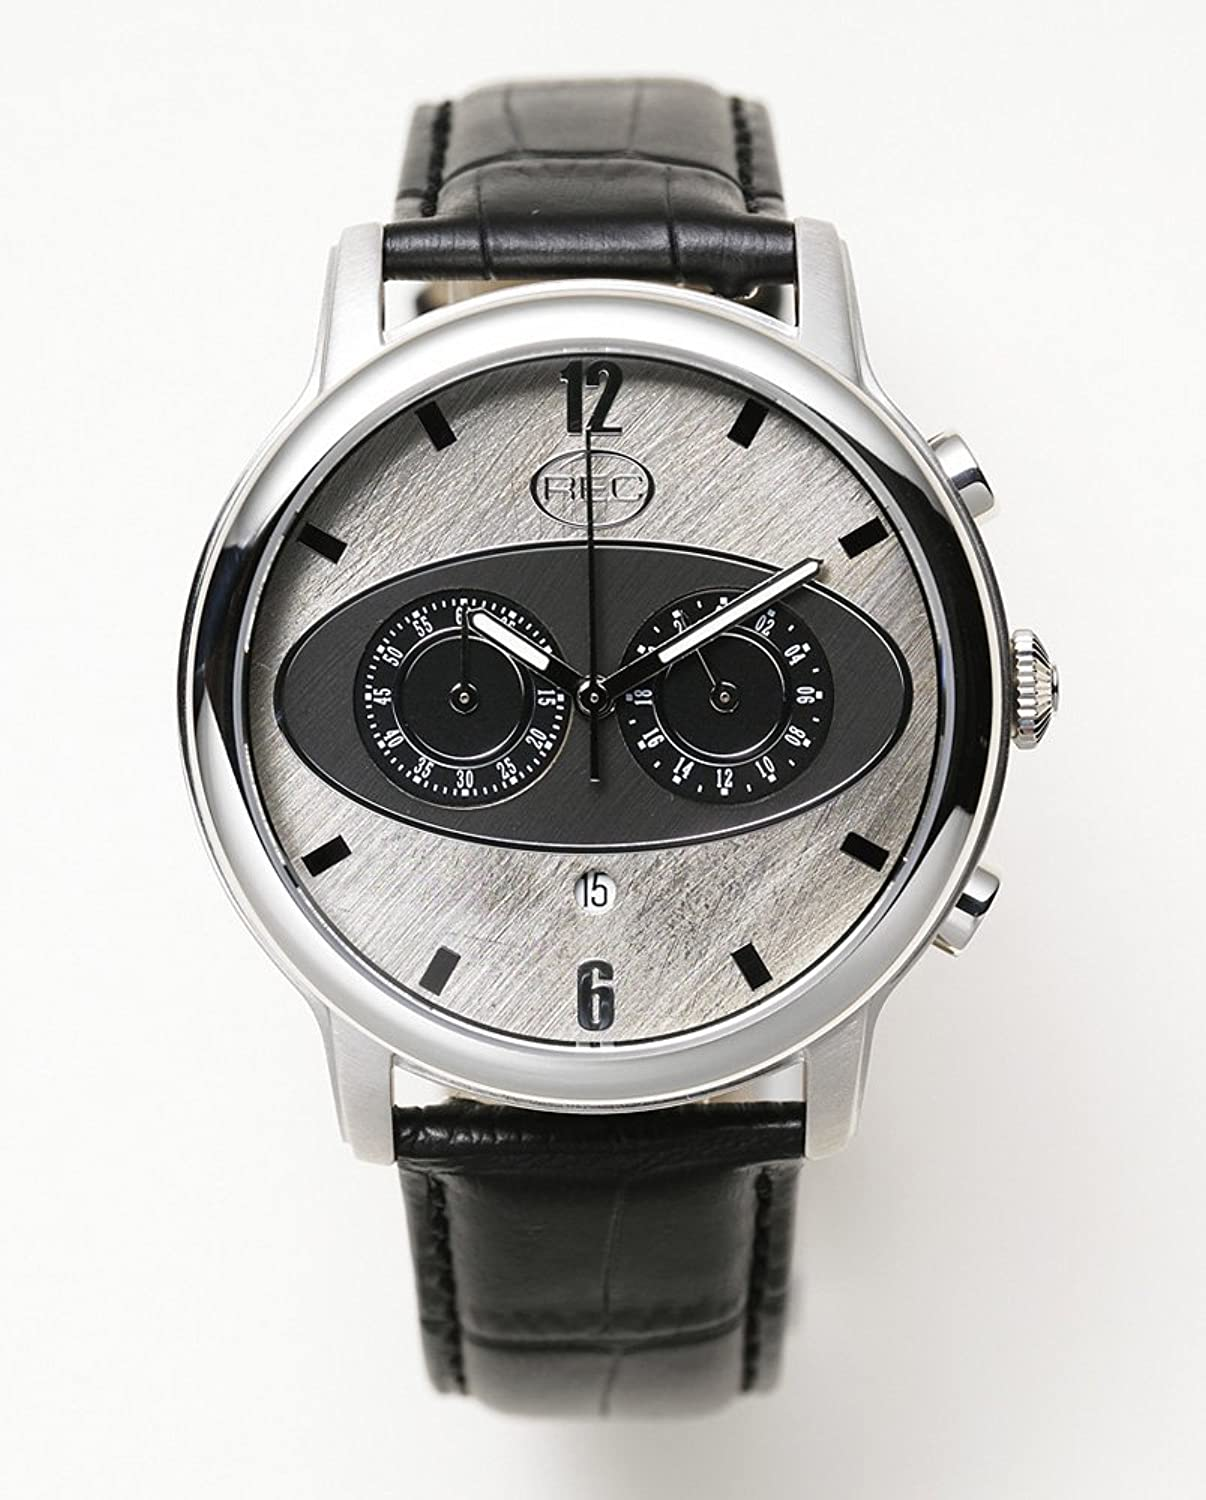 REC Watches Mark I M1 Herren-Armbanduhr Chronograph